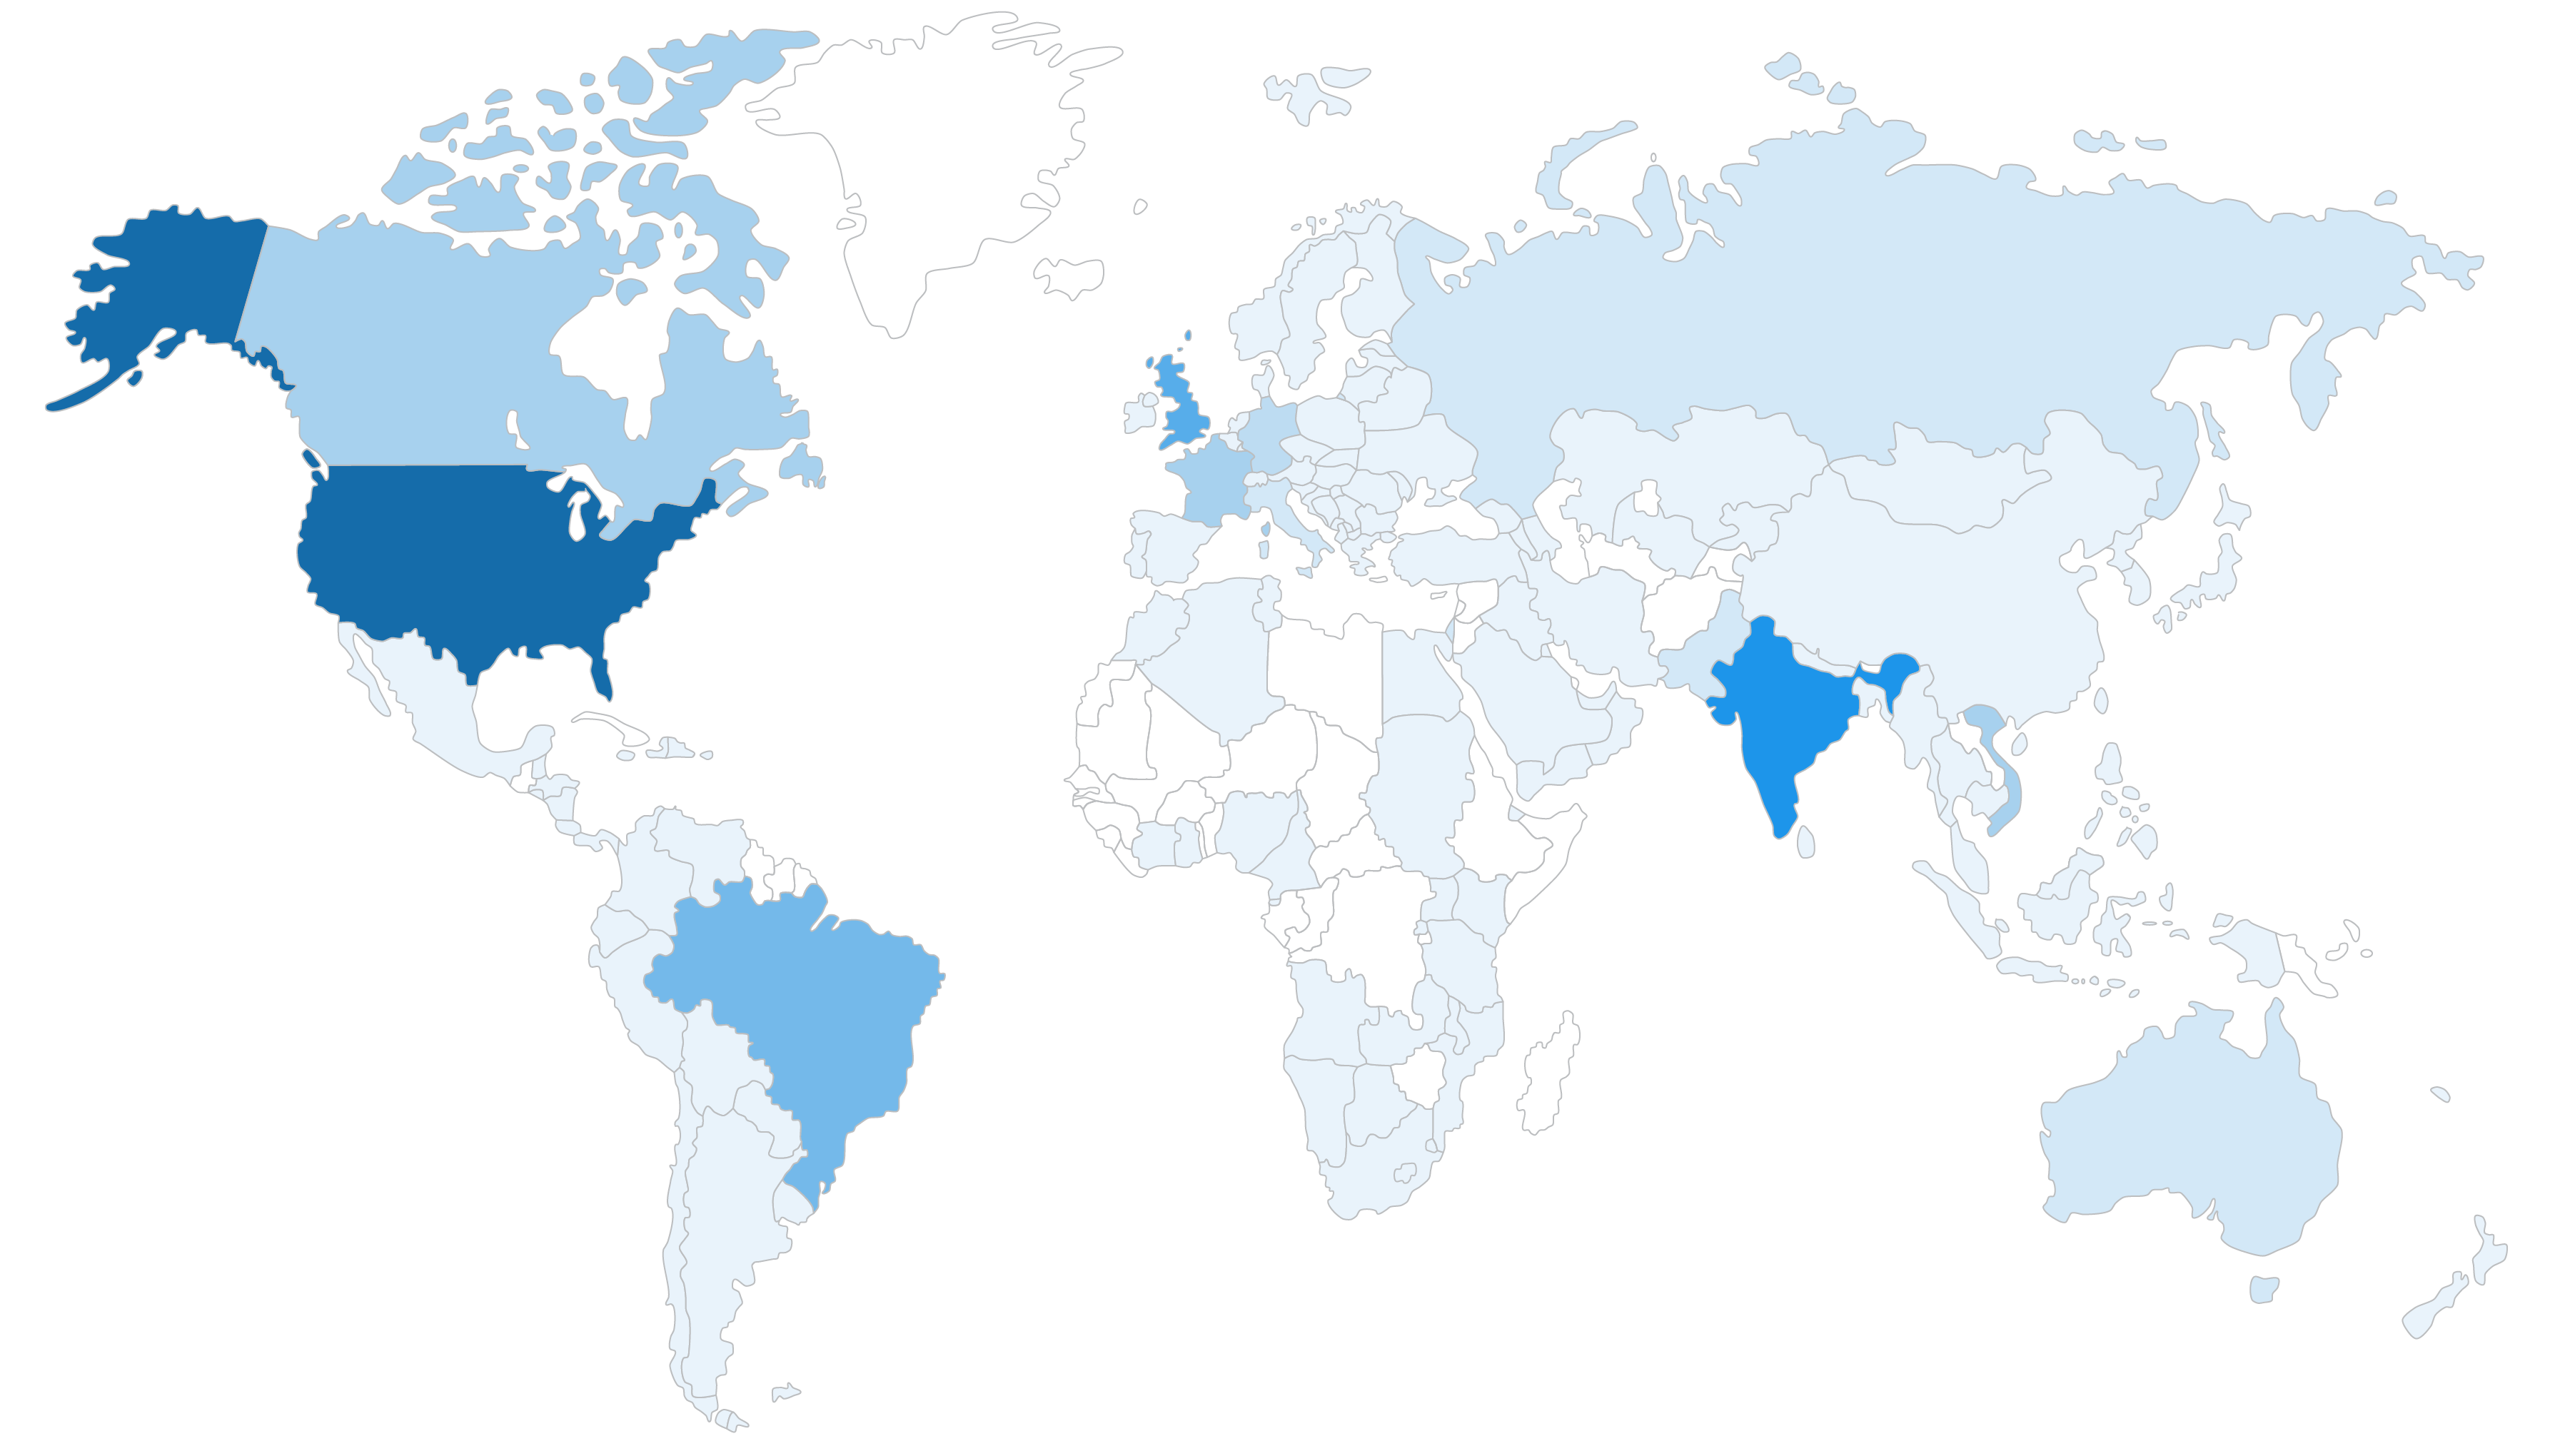 Does Facebook think Kashmir is a part of China? — Quartz India on indonesia on world map, rwanda on world map, khyber pass on world map, jammu on world map, jerusalem on world map, delhi sultanate on world map, orissa on world map, bangladesh on world map, pakistan on world map, philippines on world map, punjab on world map, himalayas on world map, brazil on world map, the galapagos islands on world map, chennai on world map, moscow on world map, myanmar on world map, ireland on world map, israel on world map, singapore on world map,